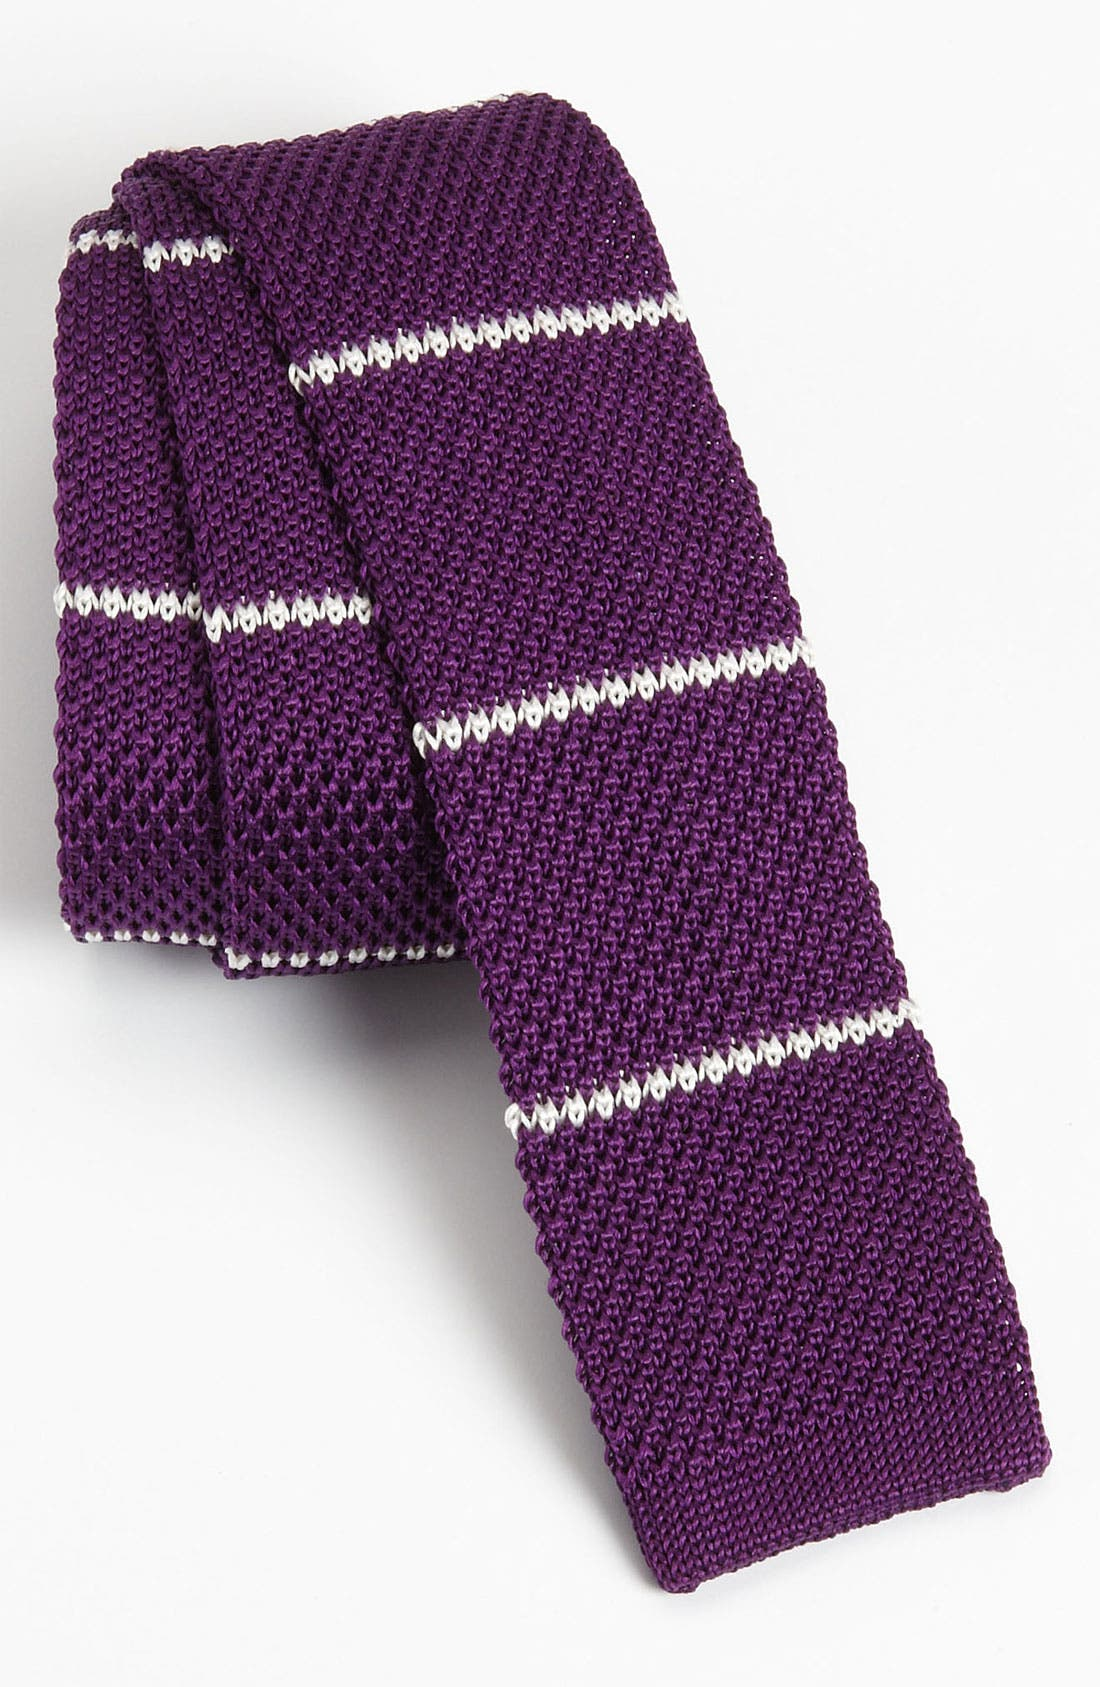 Alternate Image 1 Selected - The Tie Bar Knit Tie